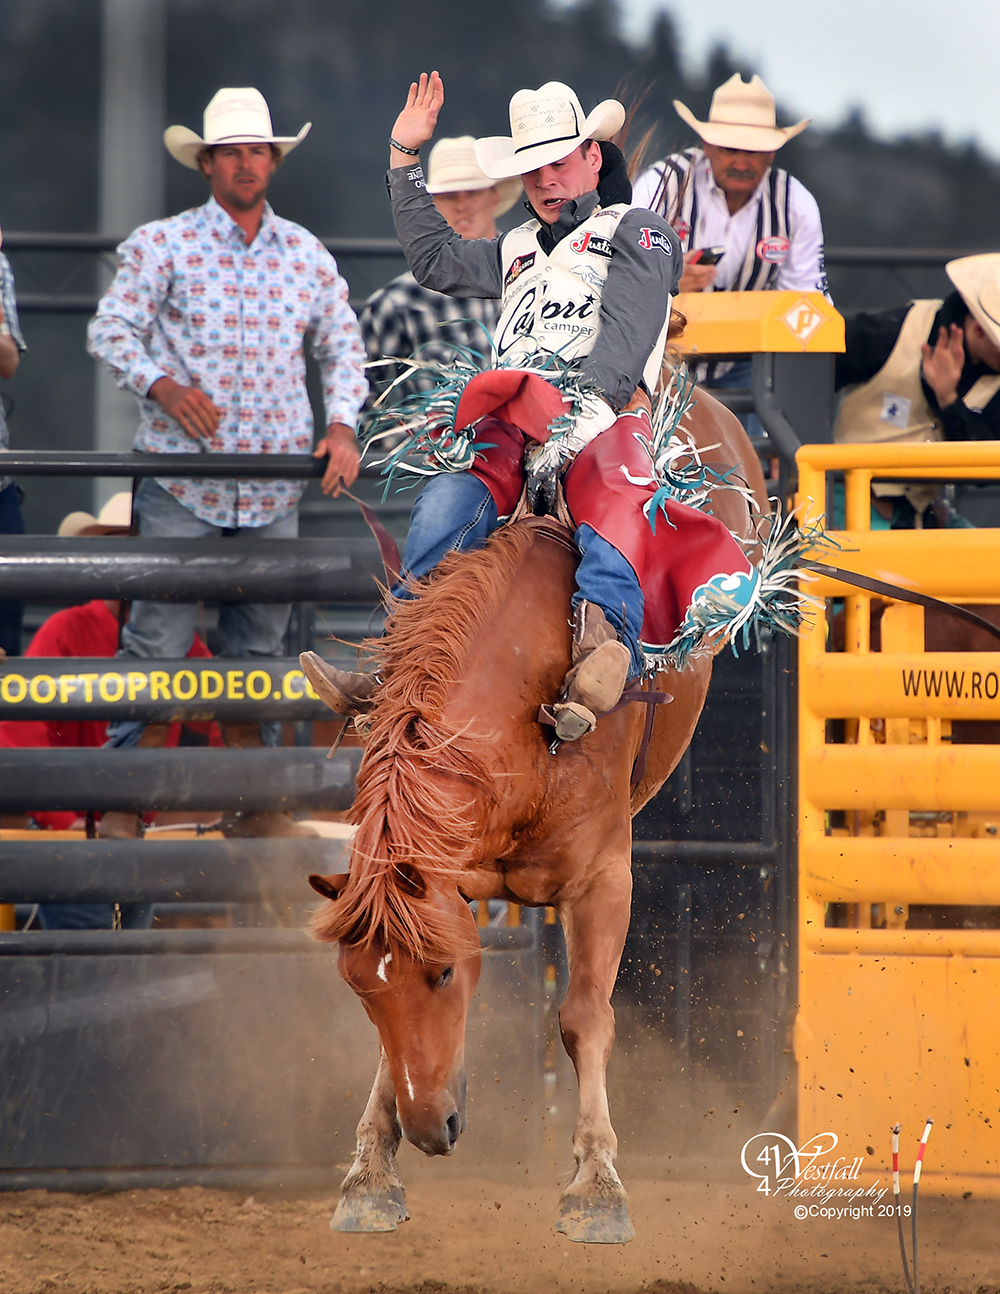 Tim O'Connell rides Cervi's San Luis for 87 points to take the bareback riding lead at the Rooftop Rodeo. (PHOTO BY GREG WESTFALL)